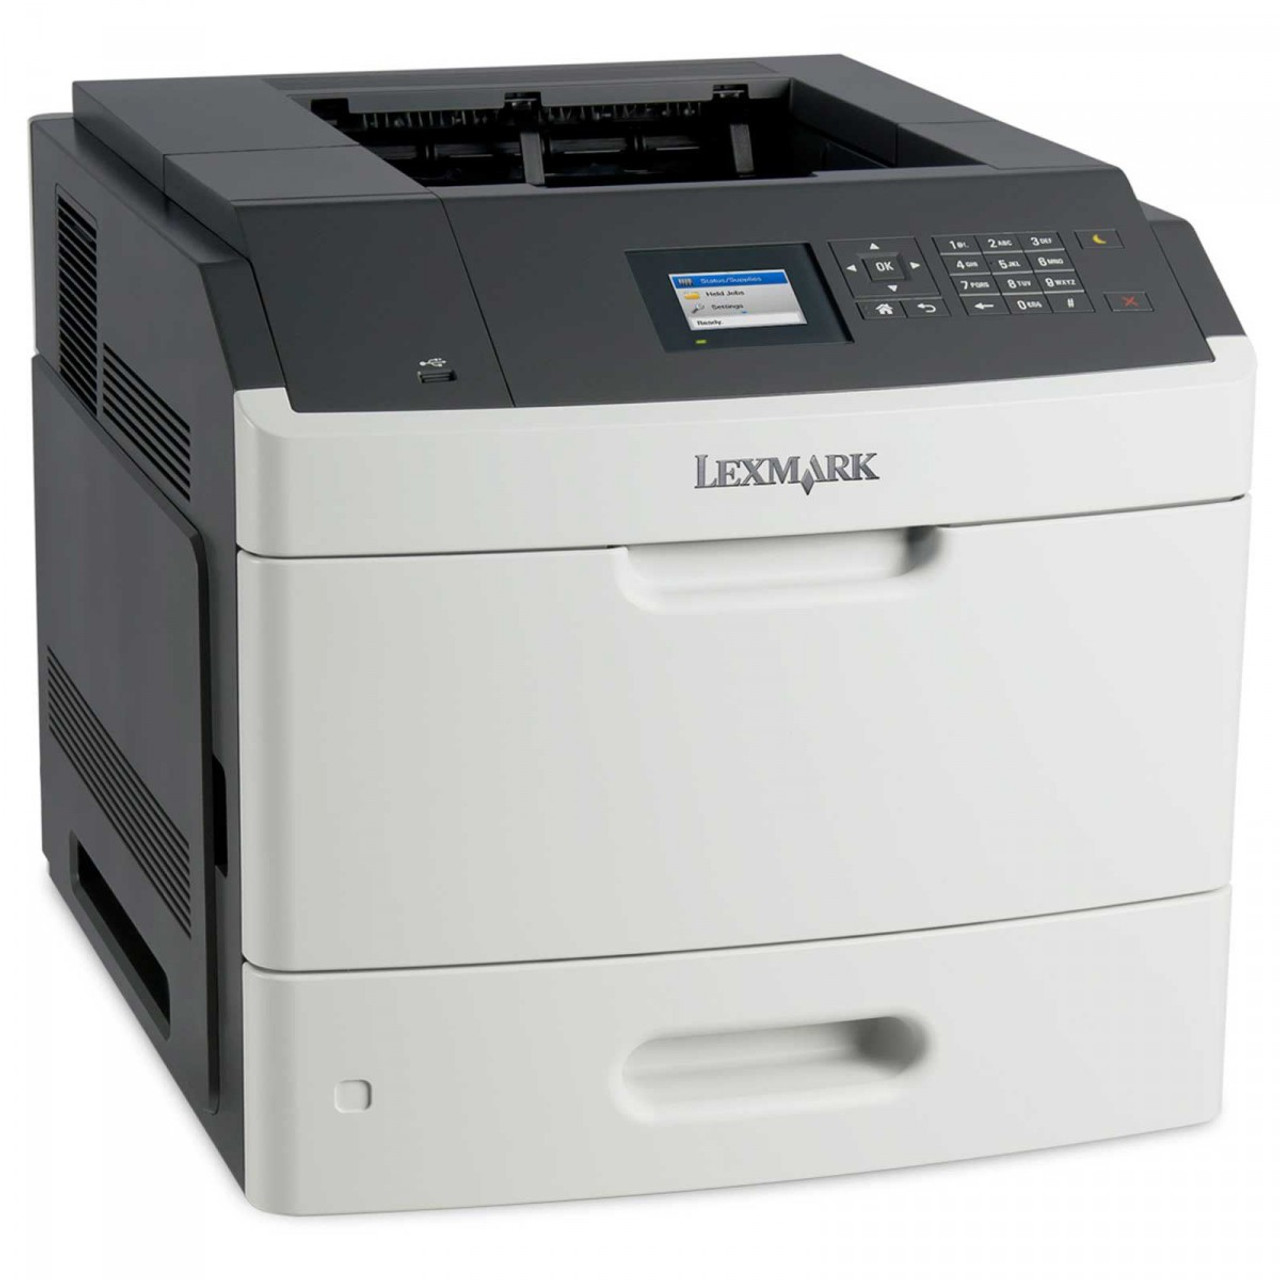 Lexmark MS811DN - 40G0210 - Lexmark Laser Printer for sale